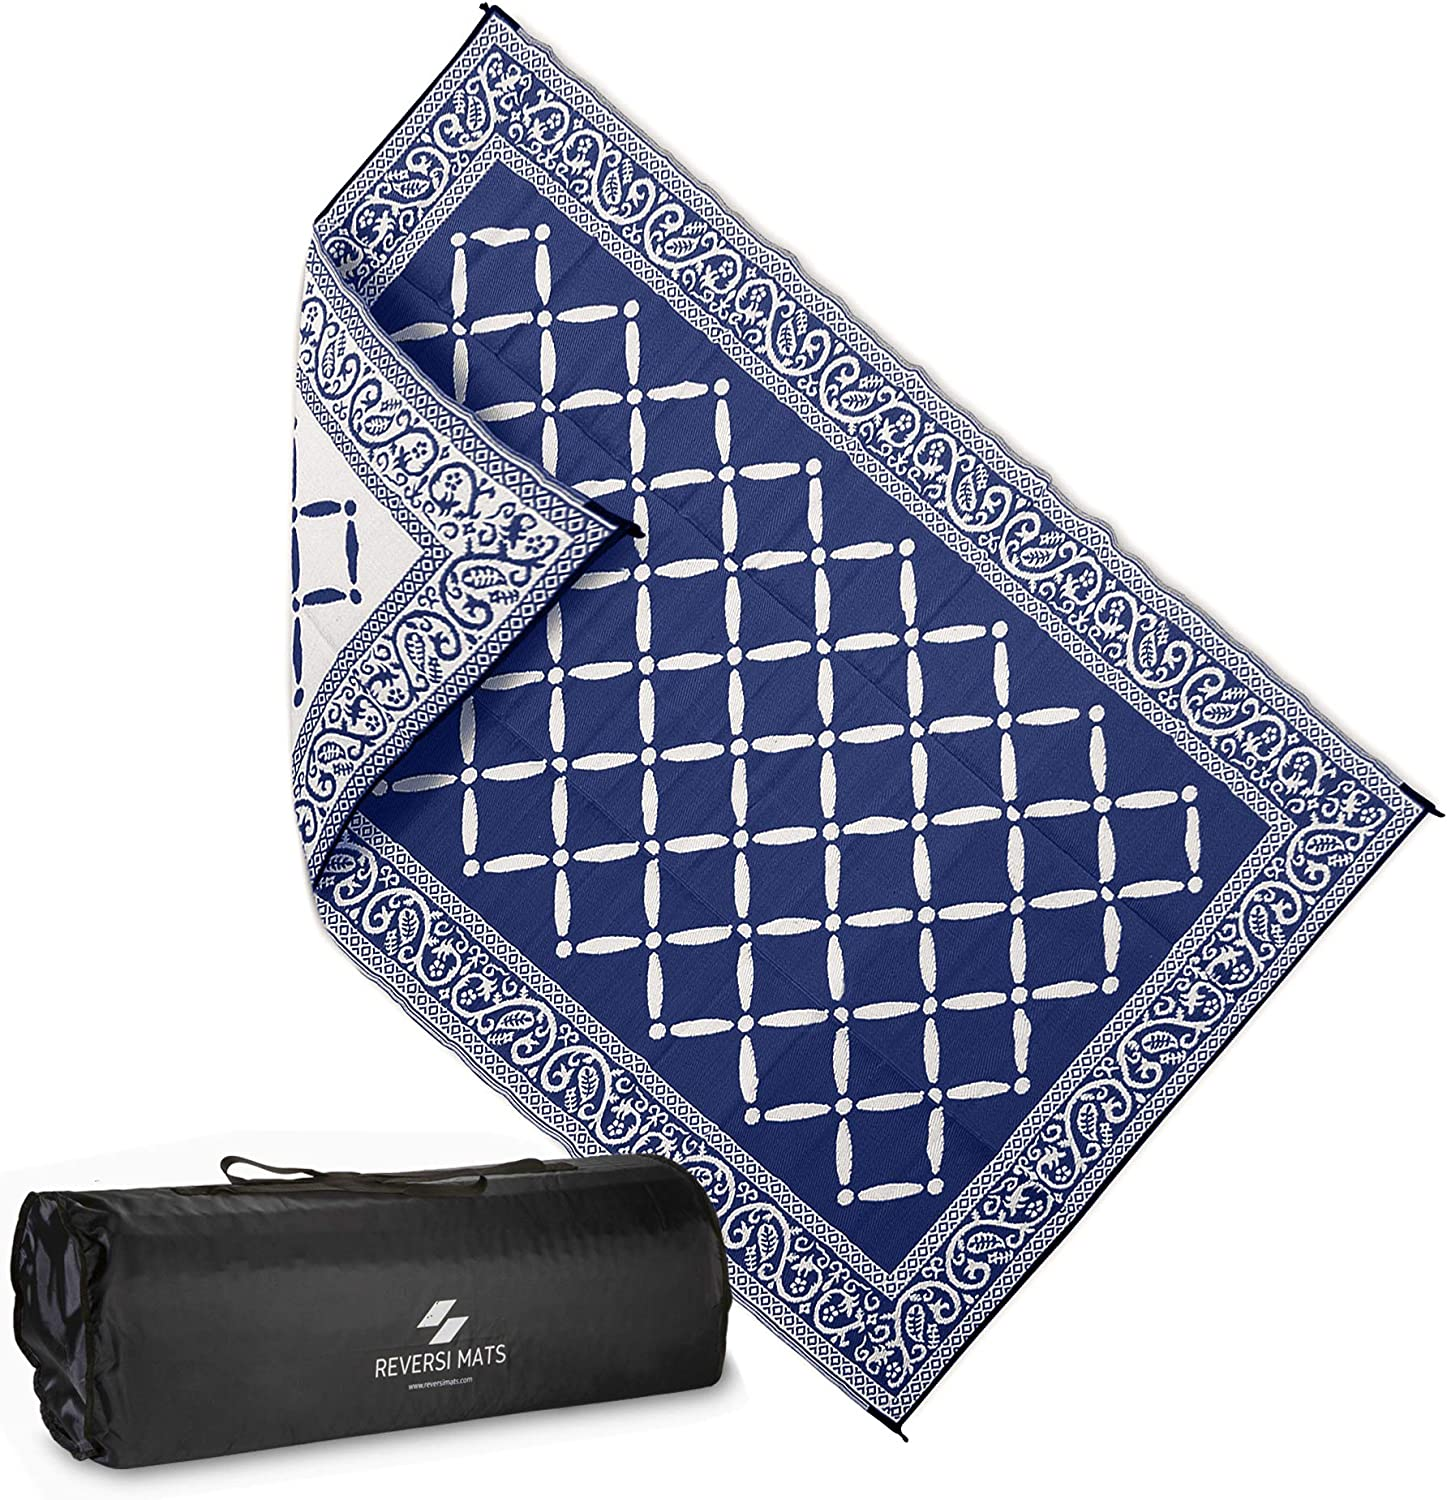 AdvenGo Reversi Mats (6' x 9') Medium Mat and Rug for Outdoors, RV, Patio, Trailer & Camping - Heavy Duty, Weather Resistant Reversible Rugs - Comes with Storage Bag - Great for Picnics - bluee Beige